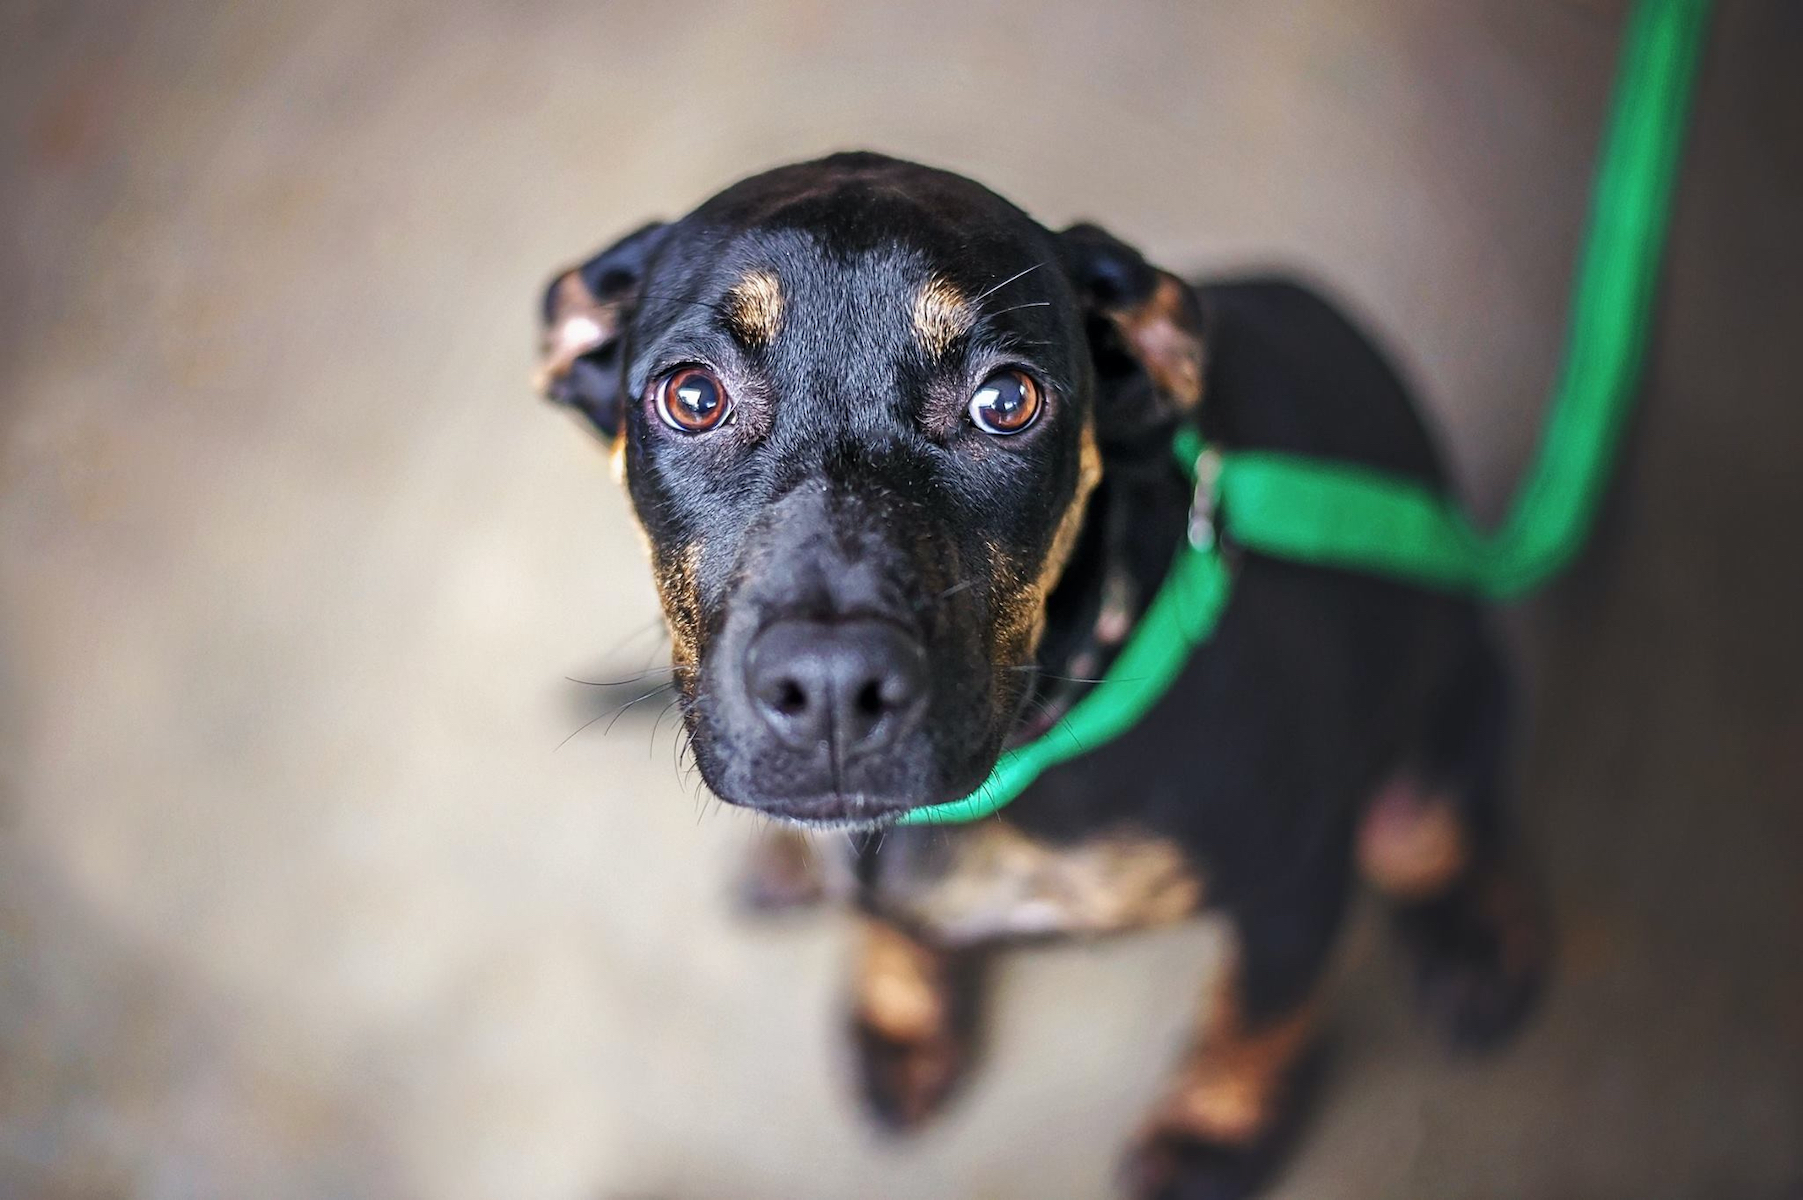 Canva - Scared Dachshund Mix in Shelter